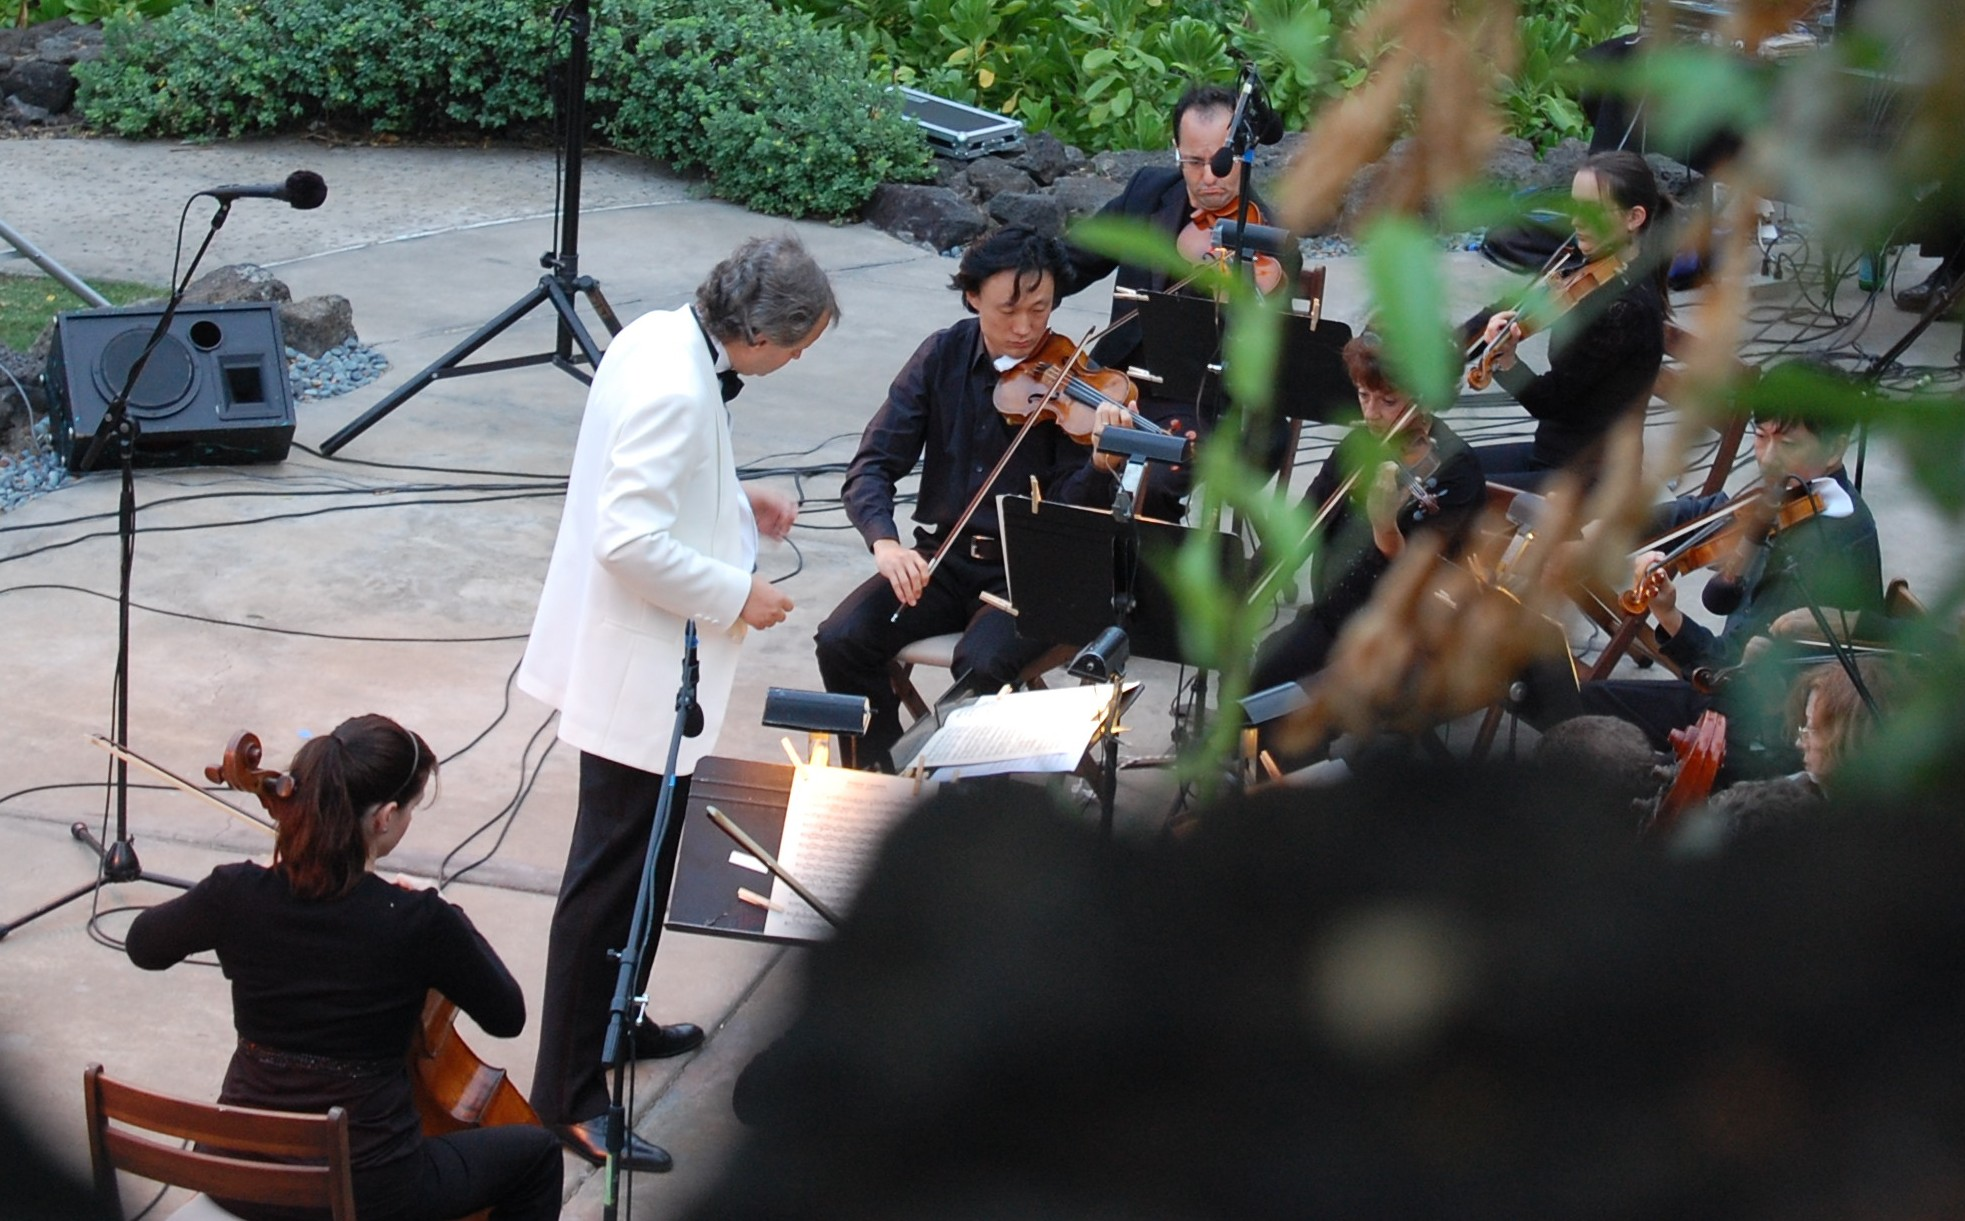 """The Orchestra of the Hawaiian Islands performs """"Pacific Moon Under the Stars,"""" Saturday, August 7, 6 PM, at the Hilton Waikoloa Village Kamehameha Court. The concert will include Hawaiian and Japanese music, along with works by Gershwin, Grieg, and Vivaldi. Guest conductor will be Hiroaki Ueba (Japan) with American Music Festivals Artistic Director Philip Simmons as guitar soloist."""